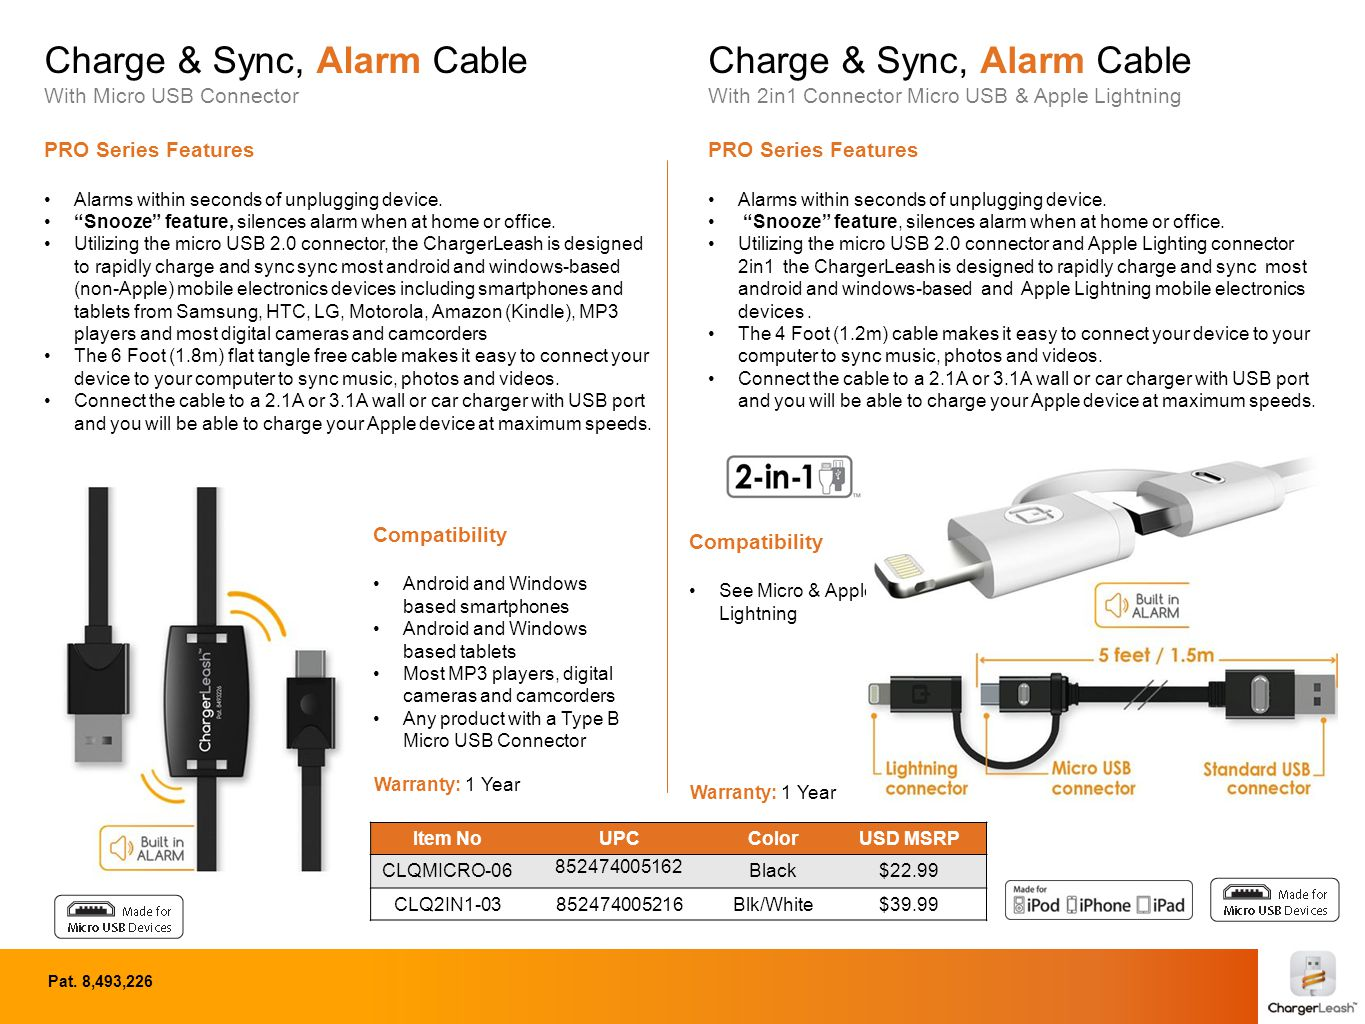 Charge & Sync, Alarm Cable With Micro USB Connector PRO Series Features Alarms within seconds of unplugging device.